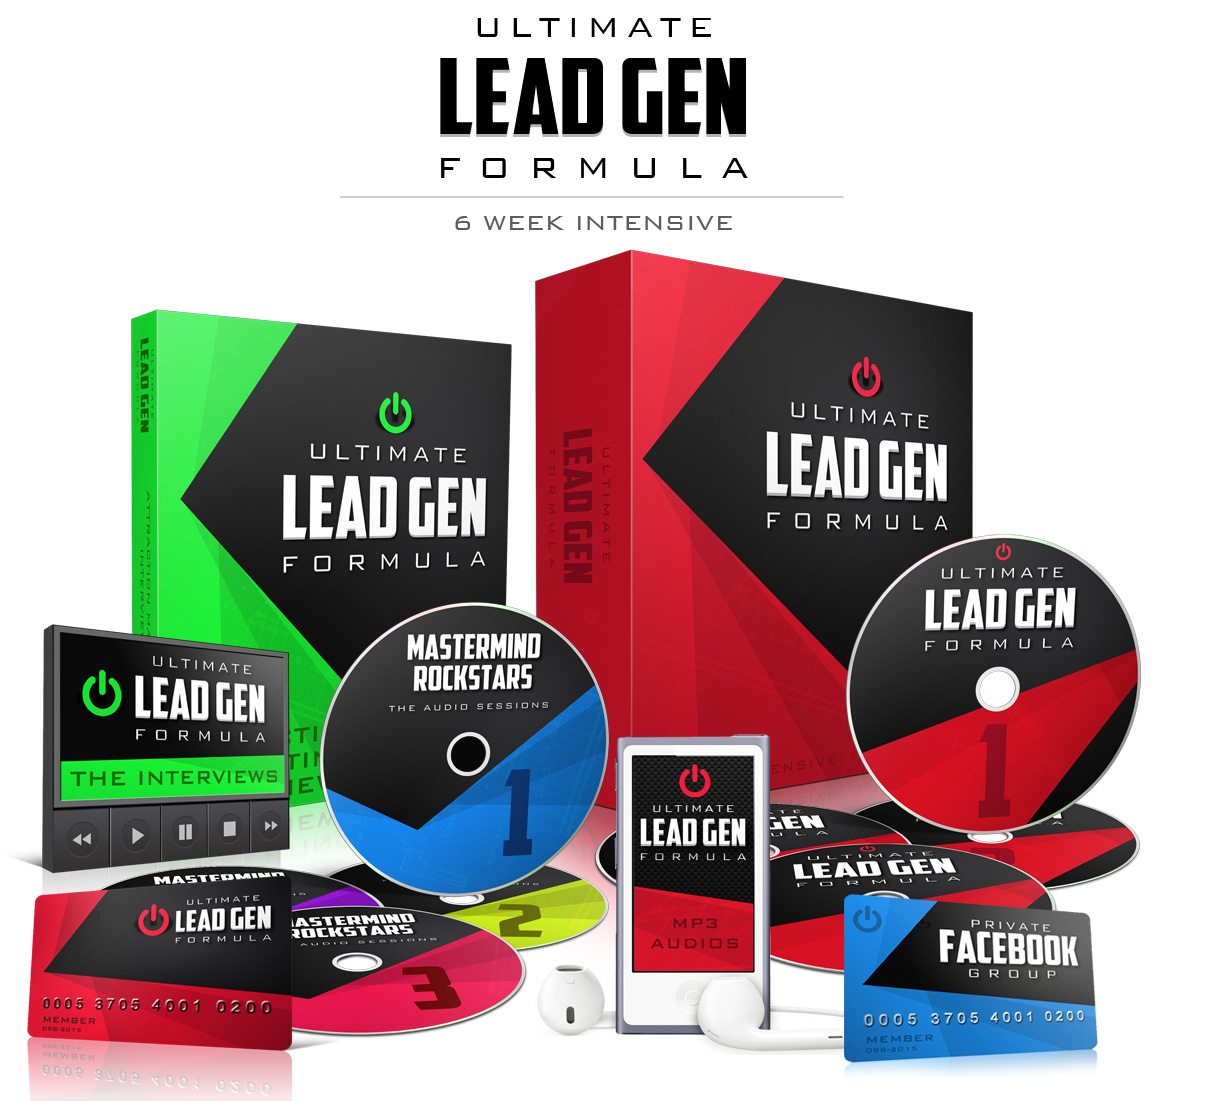 Ultimate Lead Gen Formula